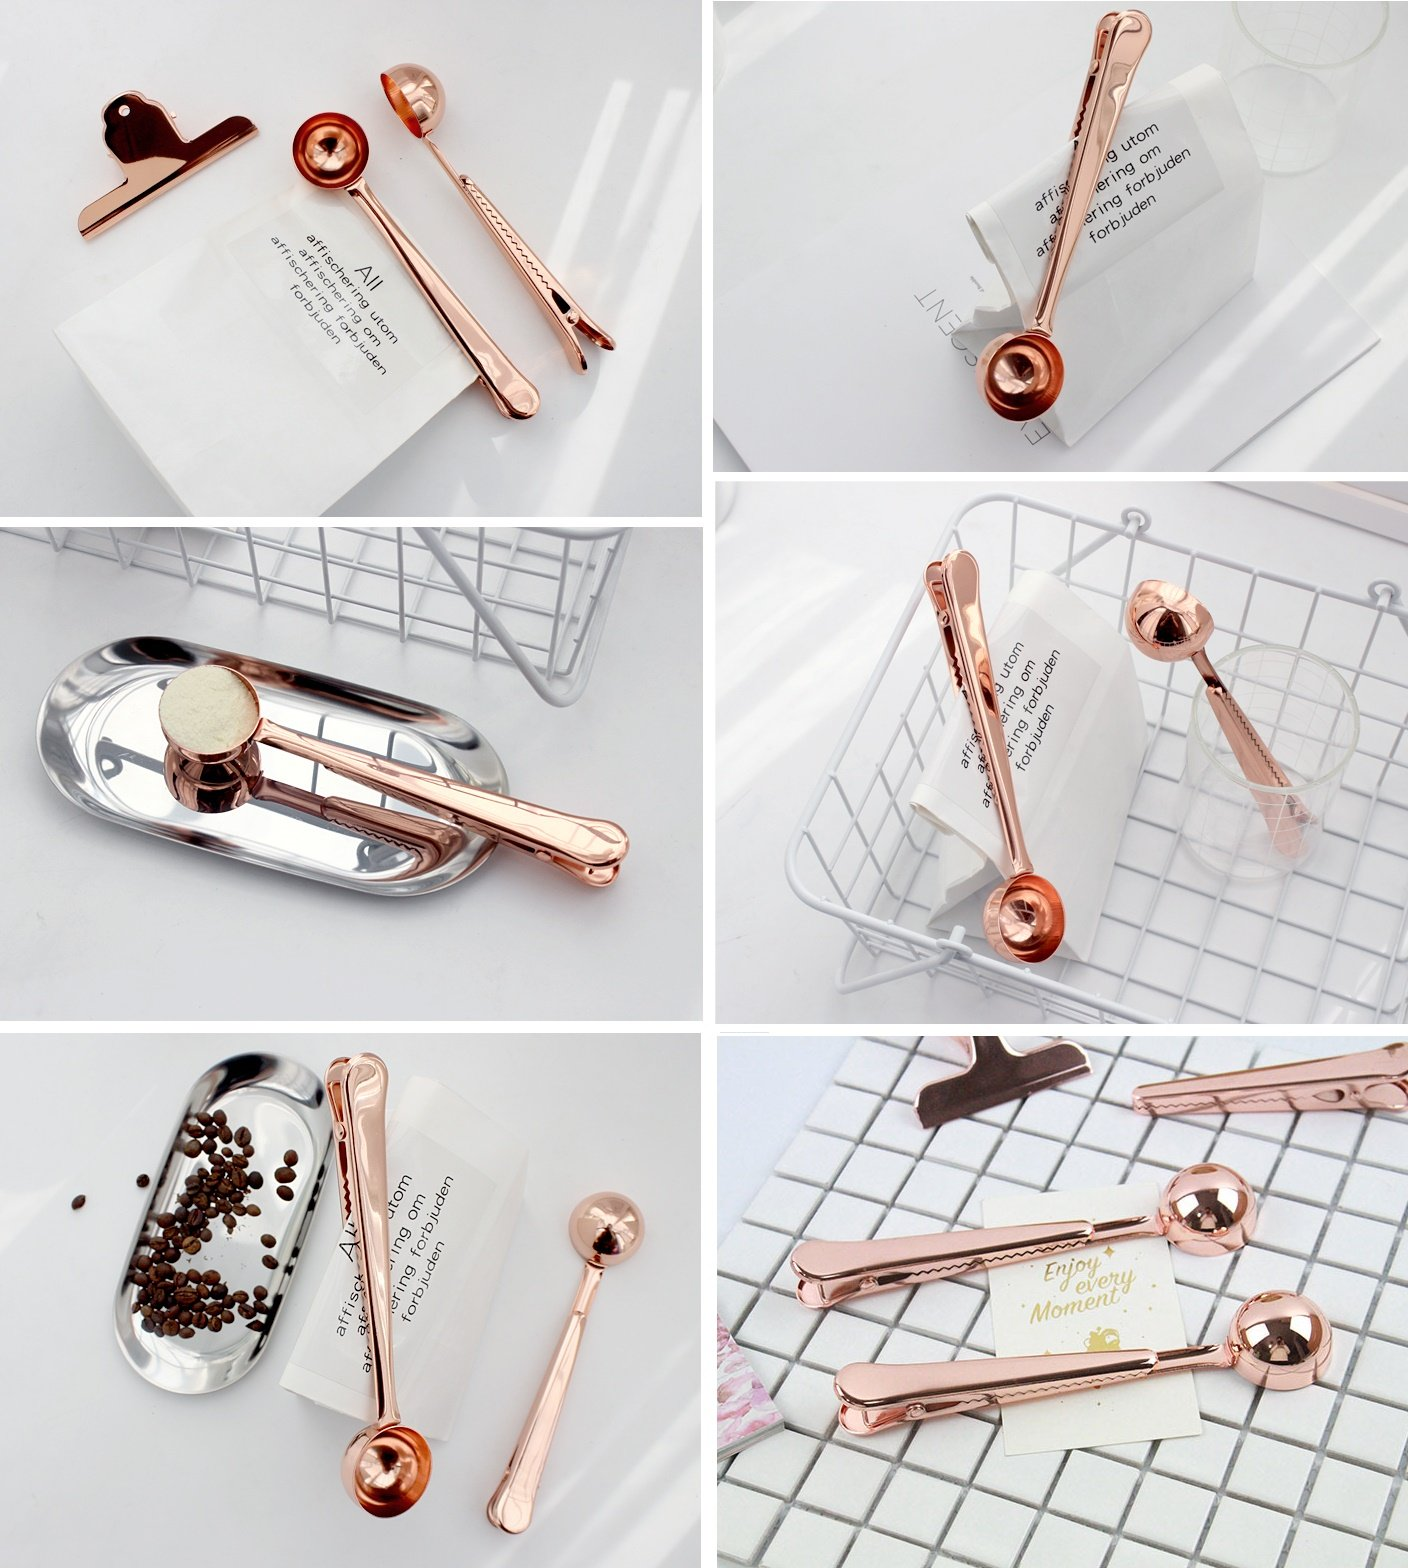 Coffee Measuring Spoon Sealing Clips, Two-in-one Long Handle Metal Scoops Bag Clips from Hoocozi, 2Pcs, Rose Gold, 1 Teaspoon